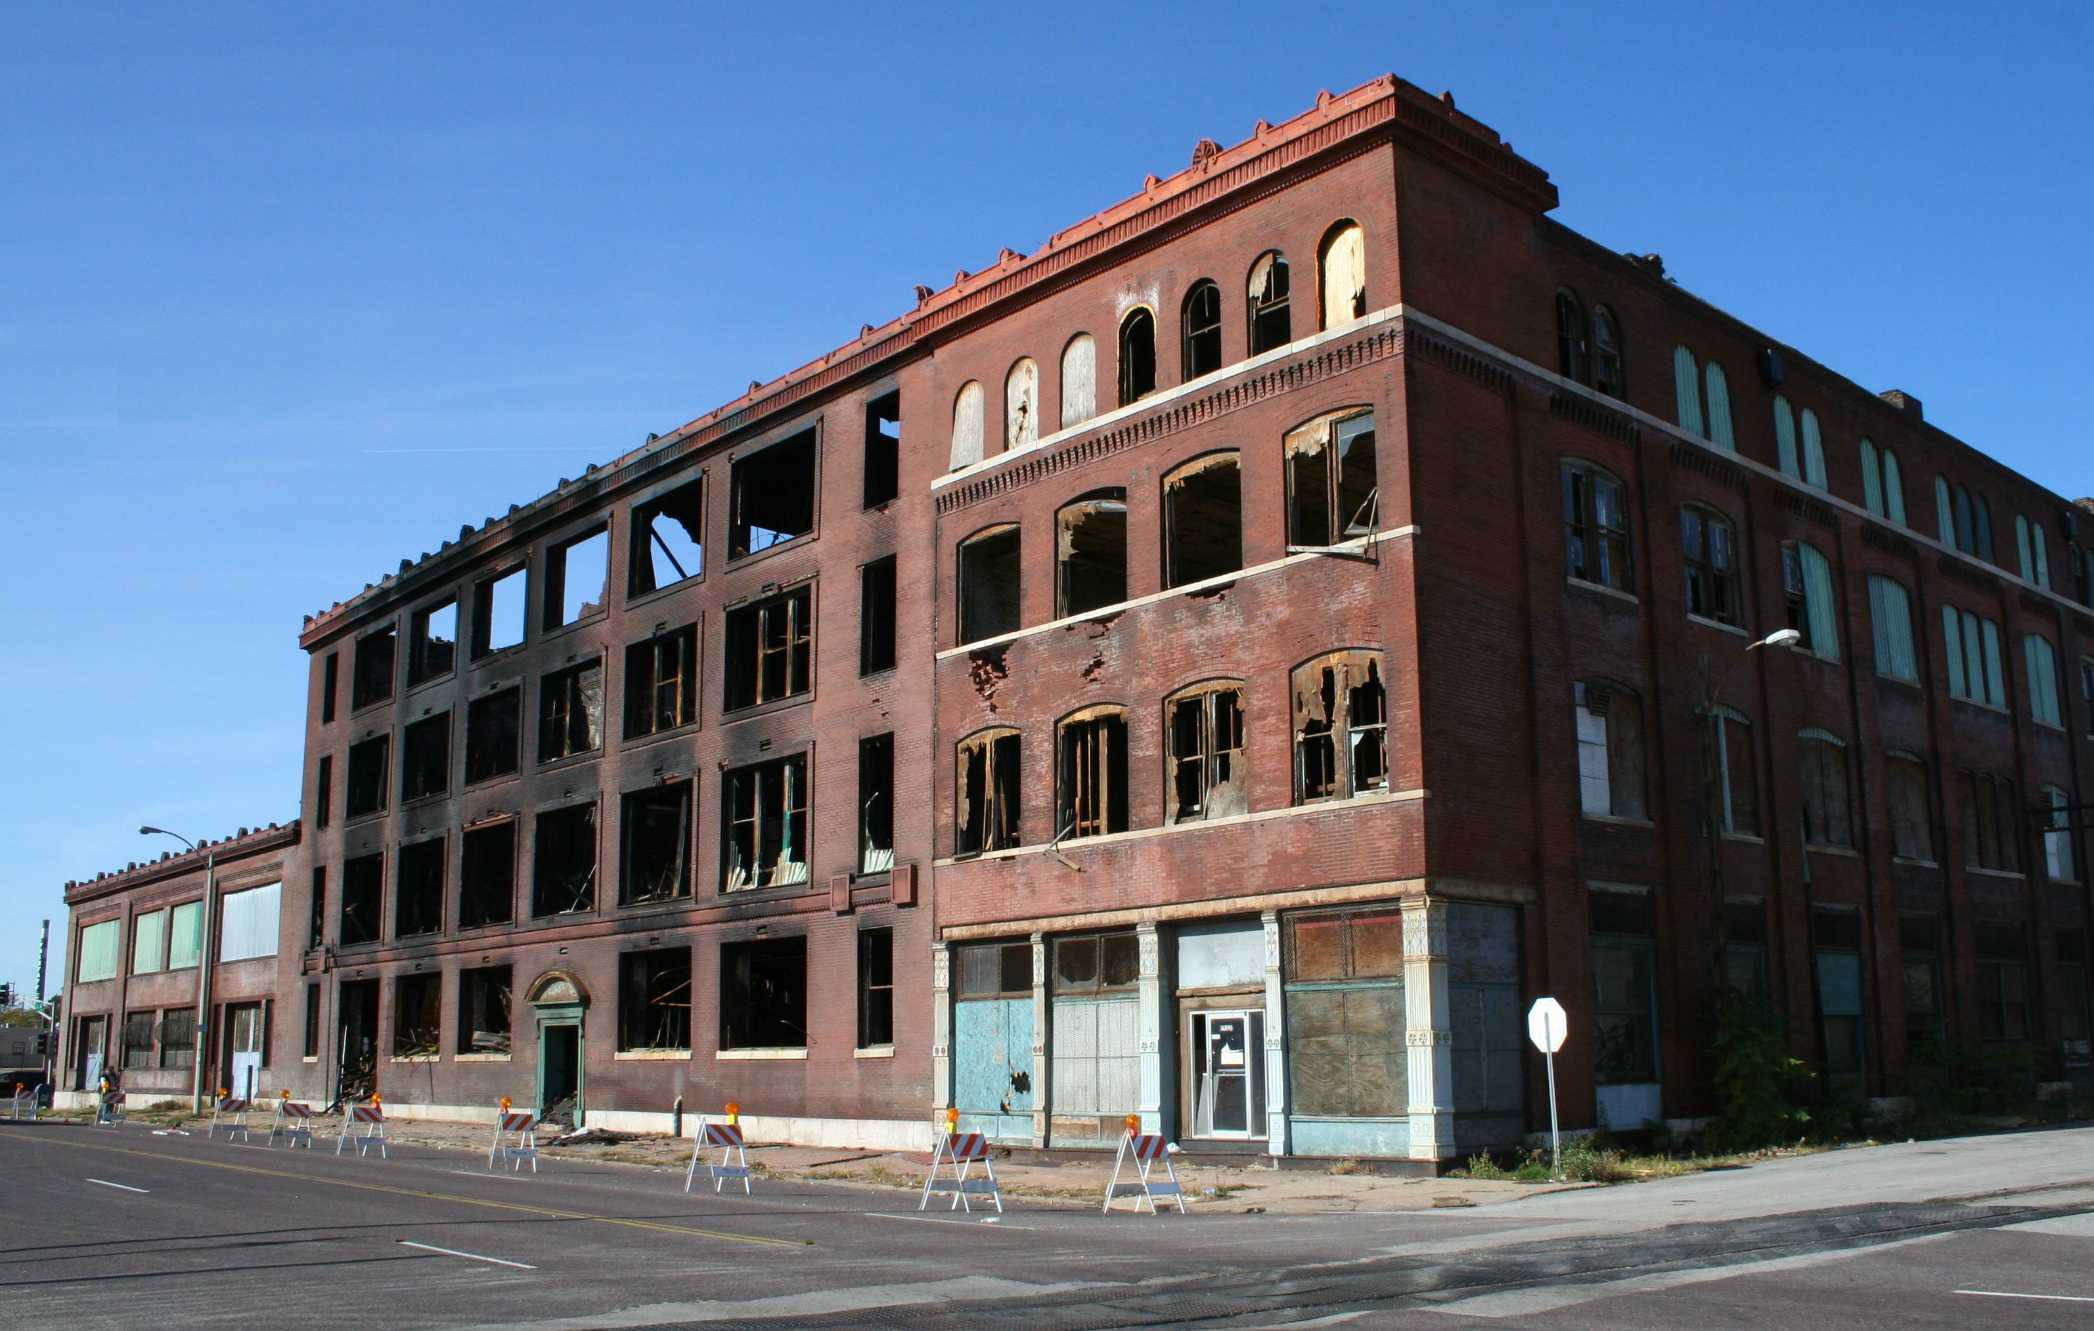 The property in question, at 1201 Cass Ave., before its demolition